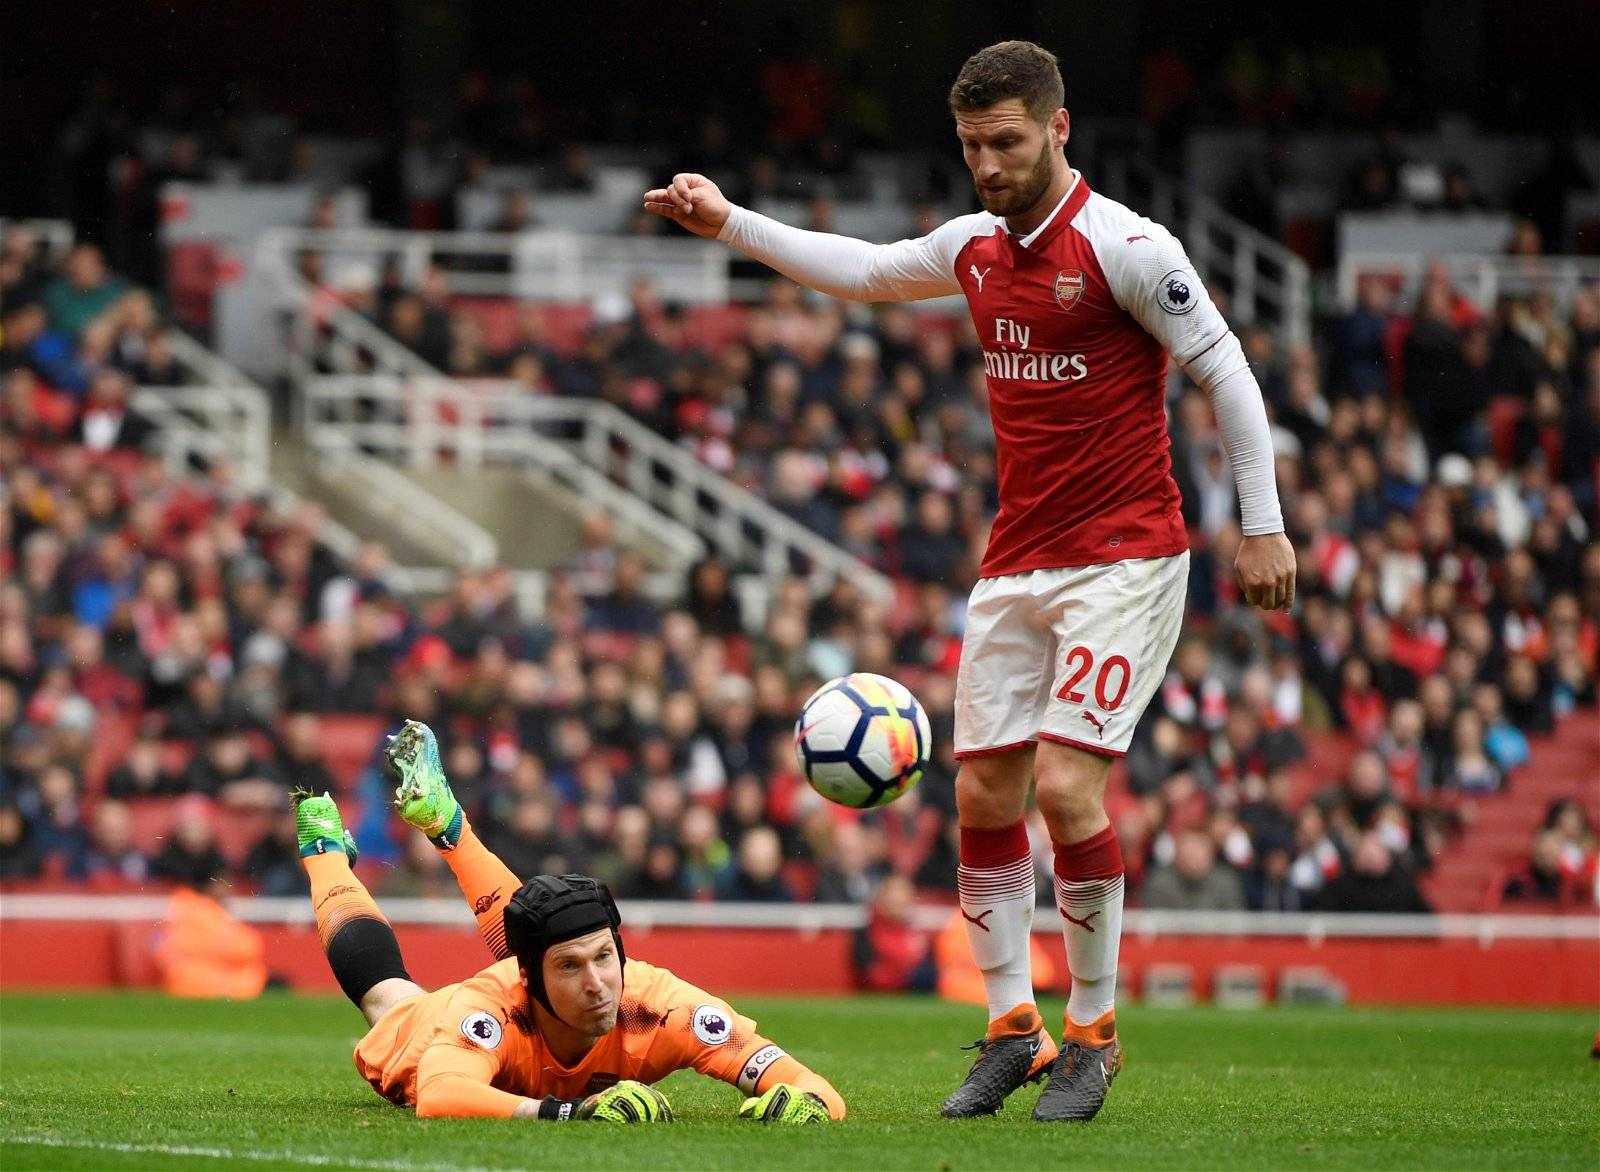 Shkodran Mustafi in action for Arsenal